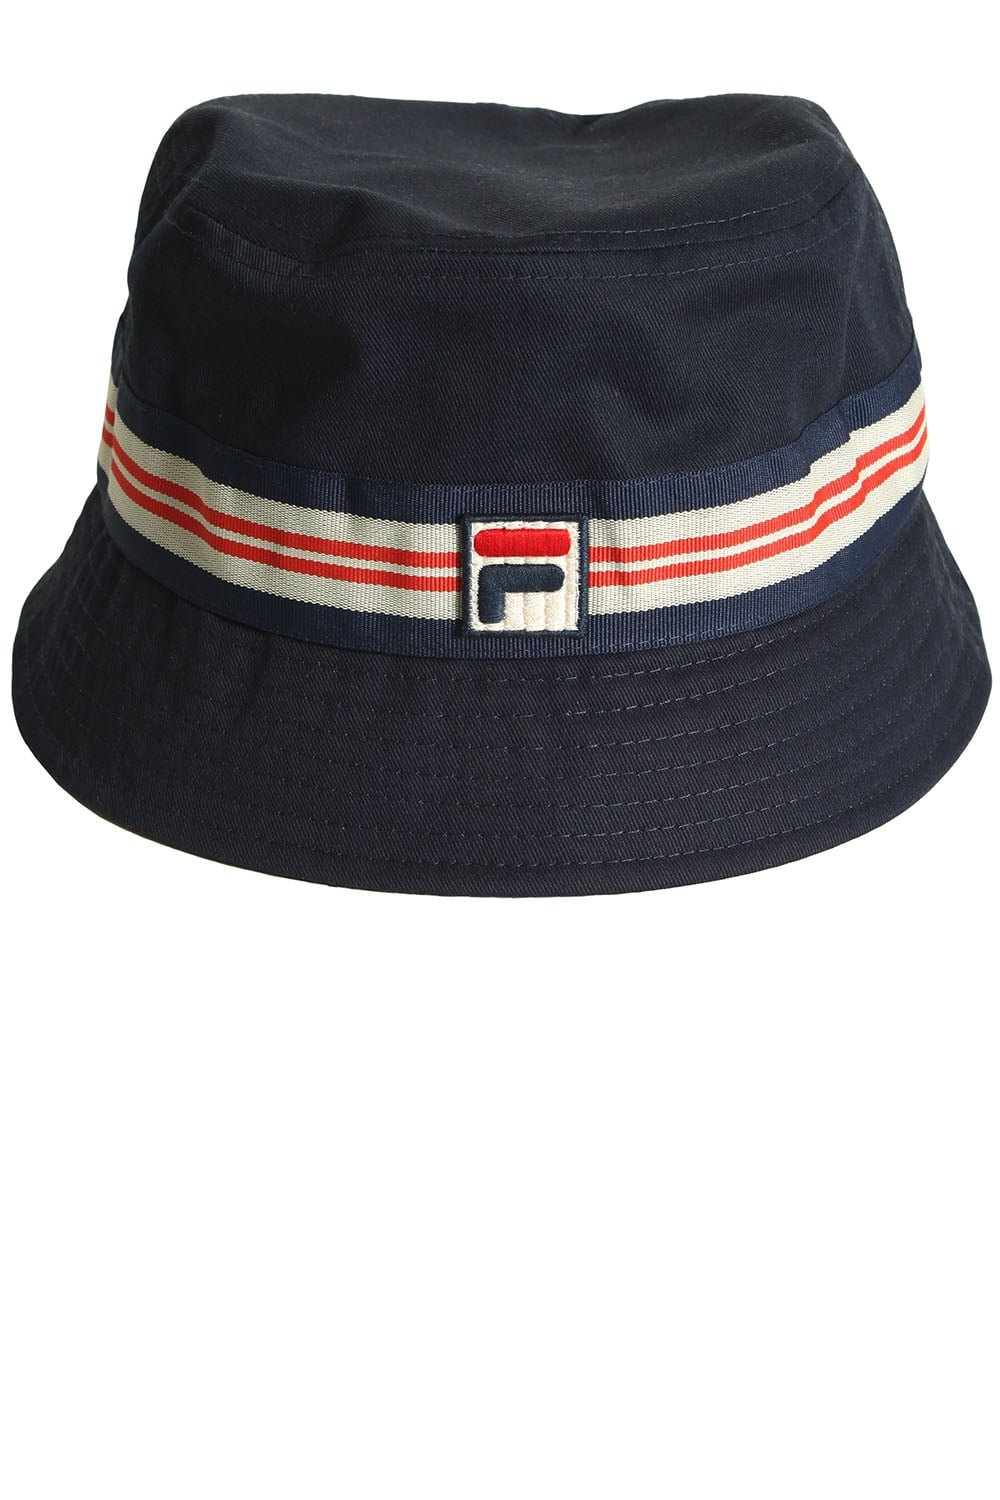 20ea714f Fila Vintage Caspar Bucket Hat Navy | Shop Fila Hats & Baseball Caps